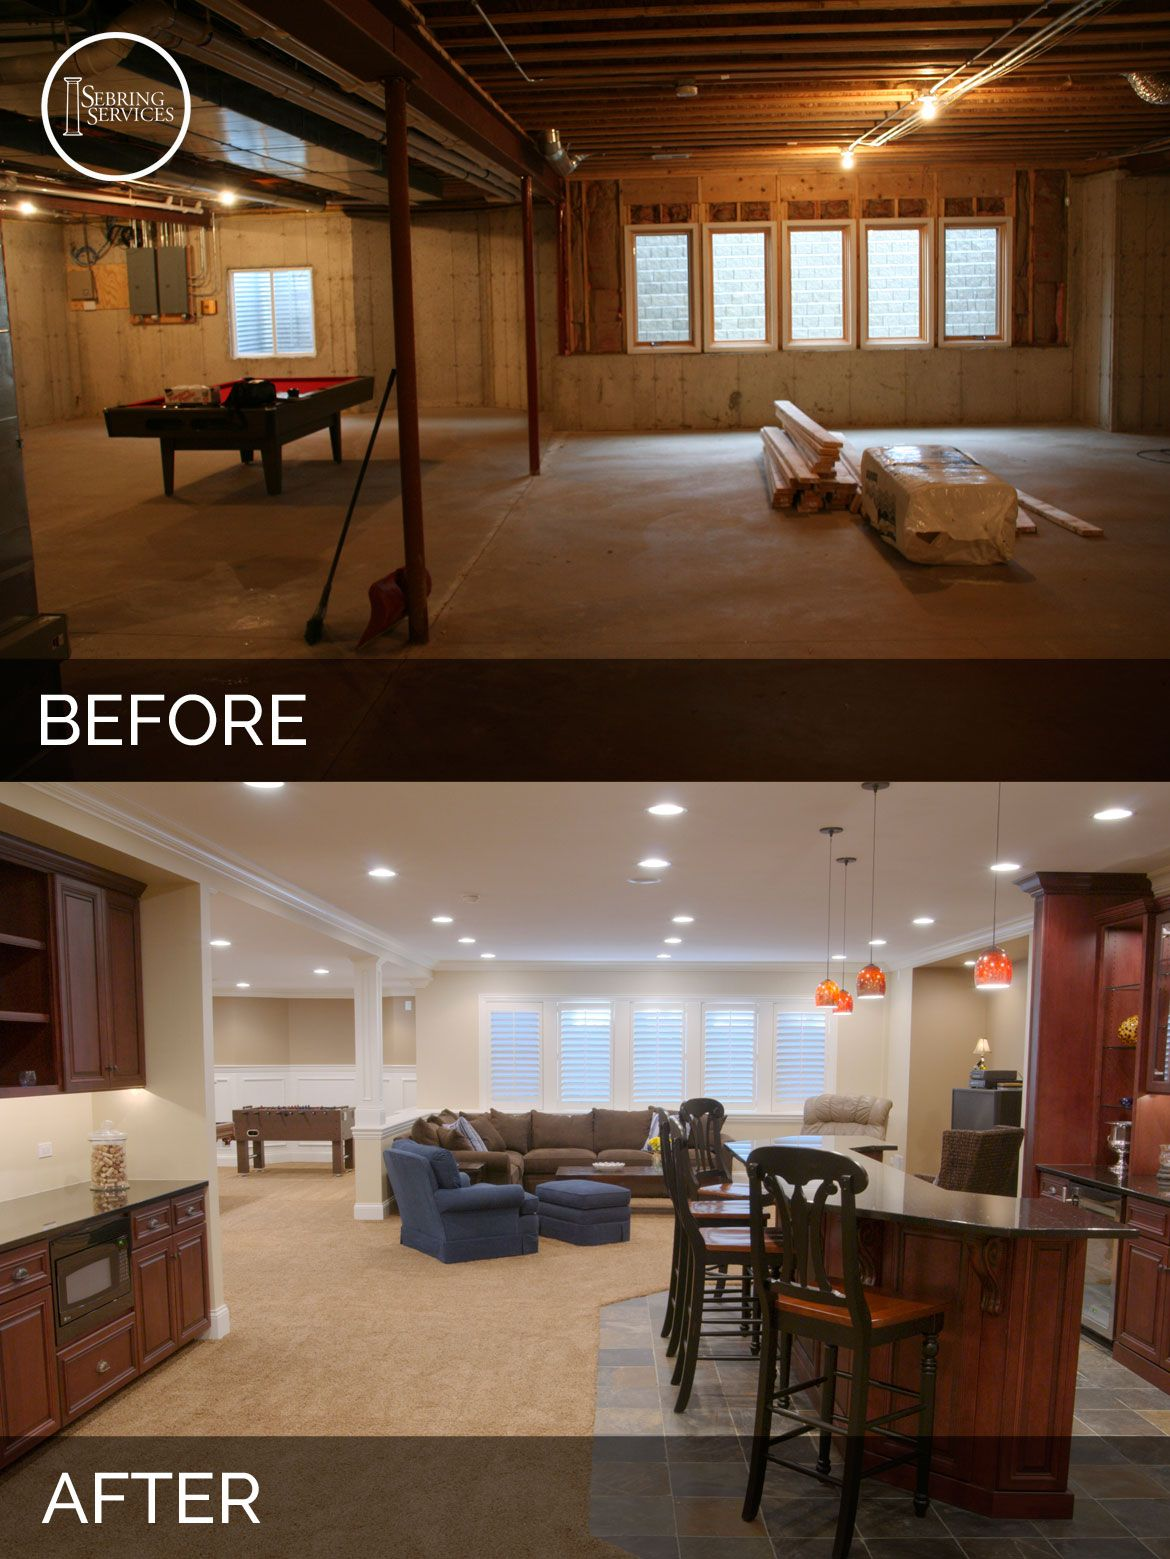 Before and After Basement Remodeling Sebring Services The Best